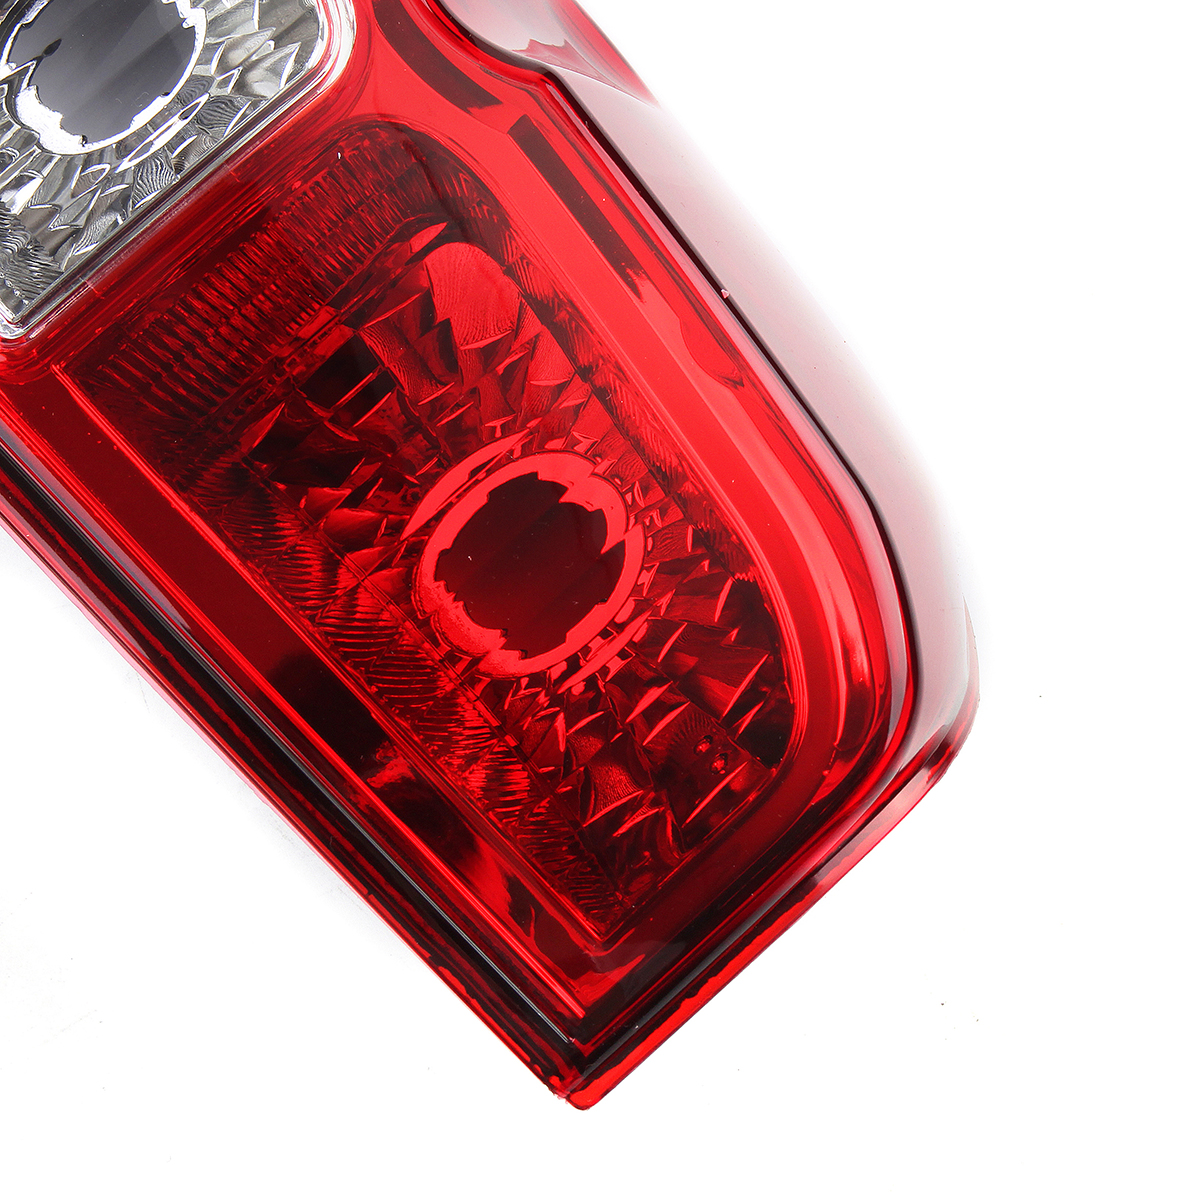 Car Tail Light Brake Lamp Left/Right for Nissan Frontier 05-17/Suzuki Equator 09-12